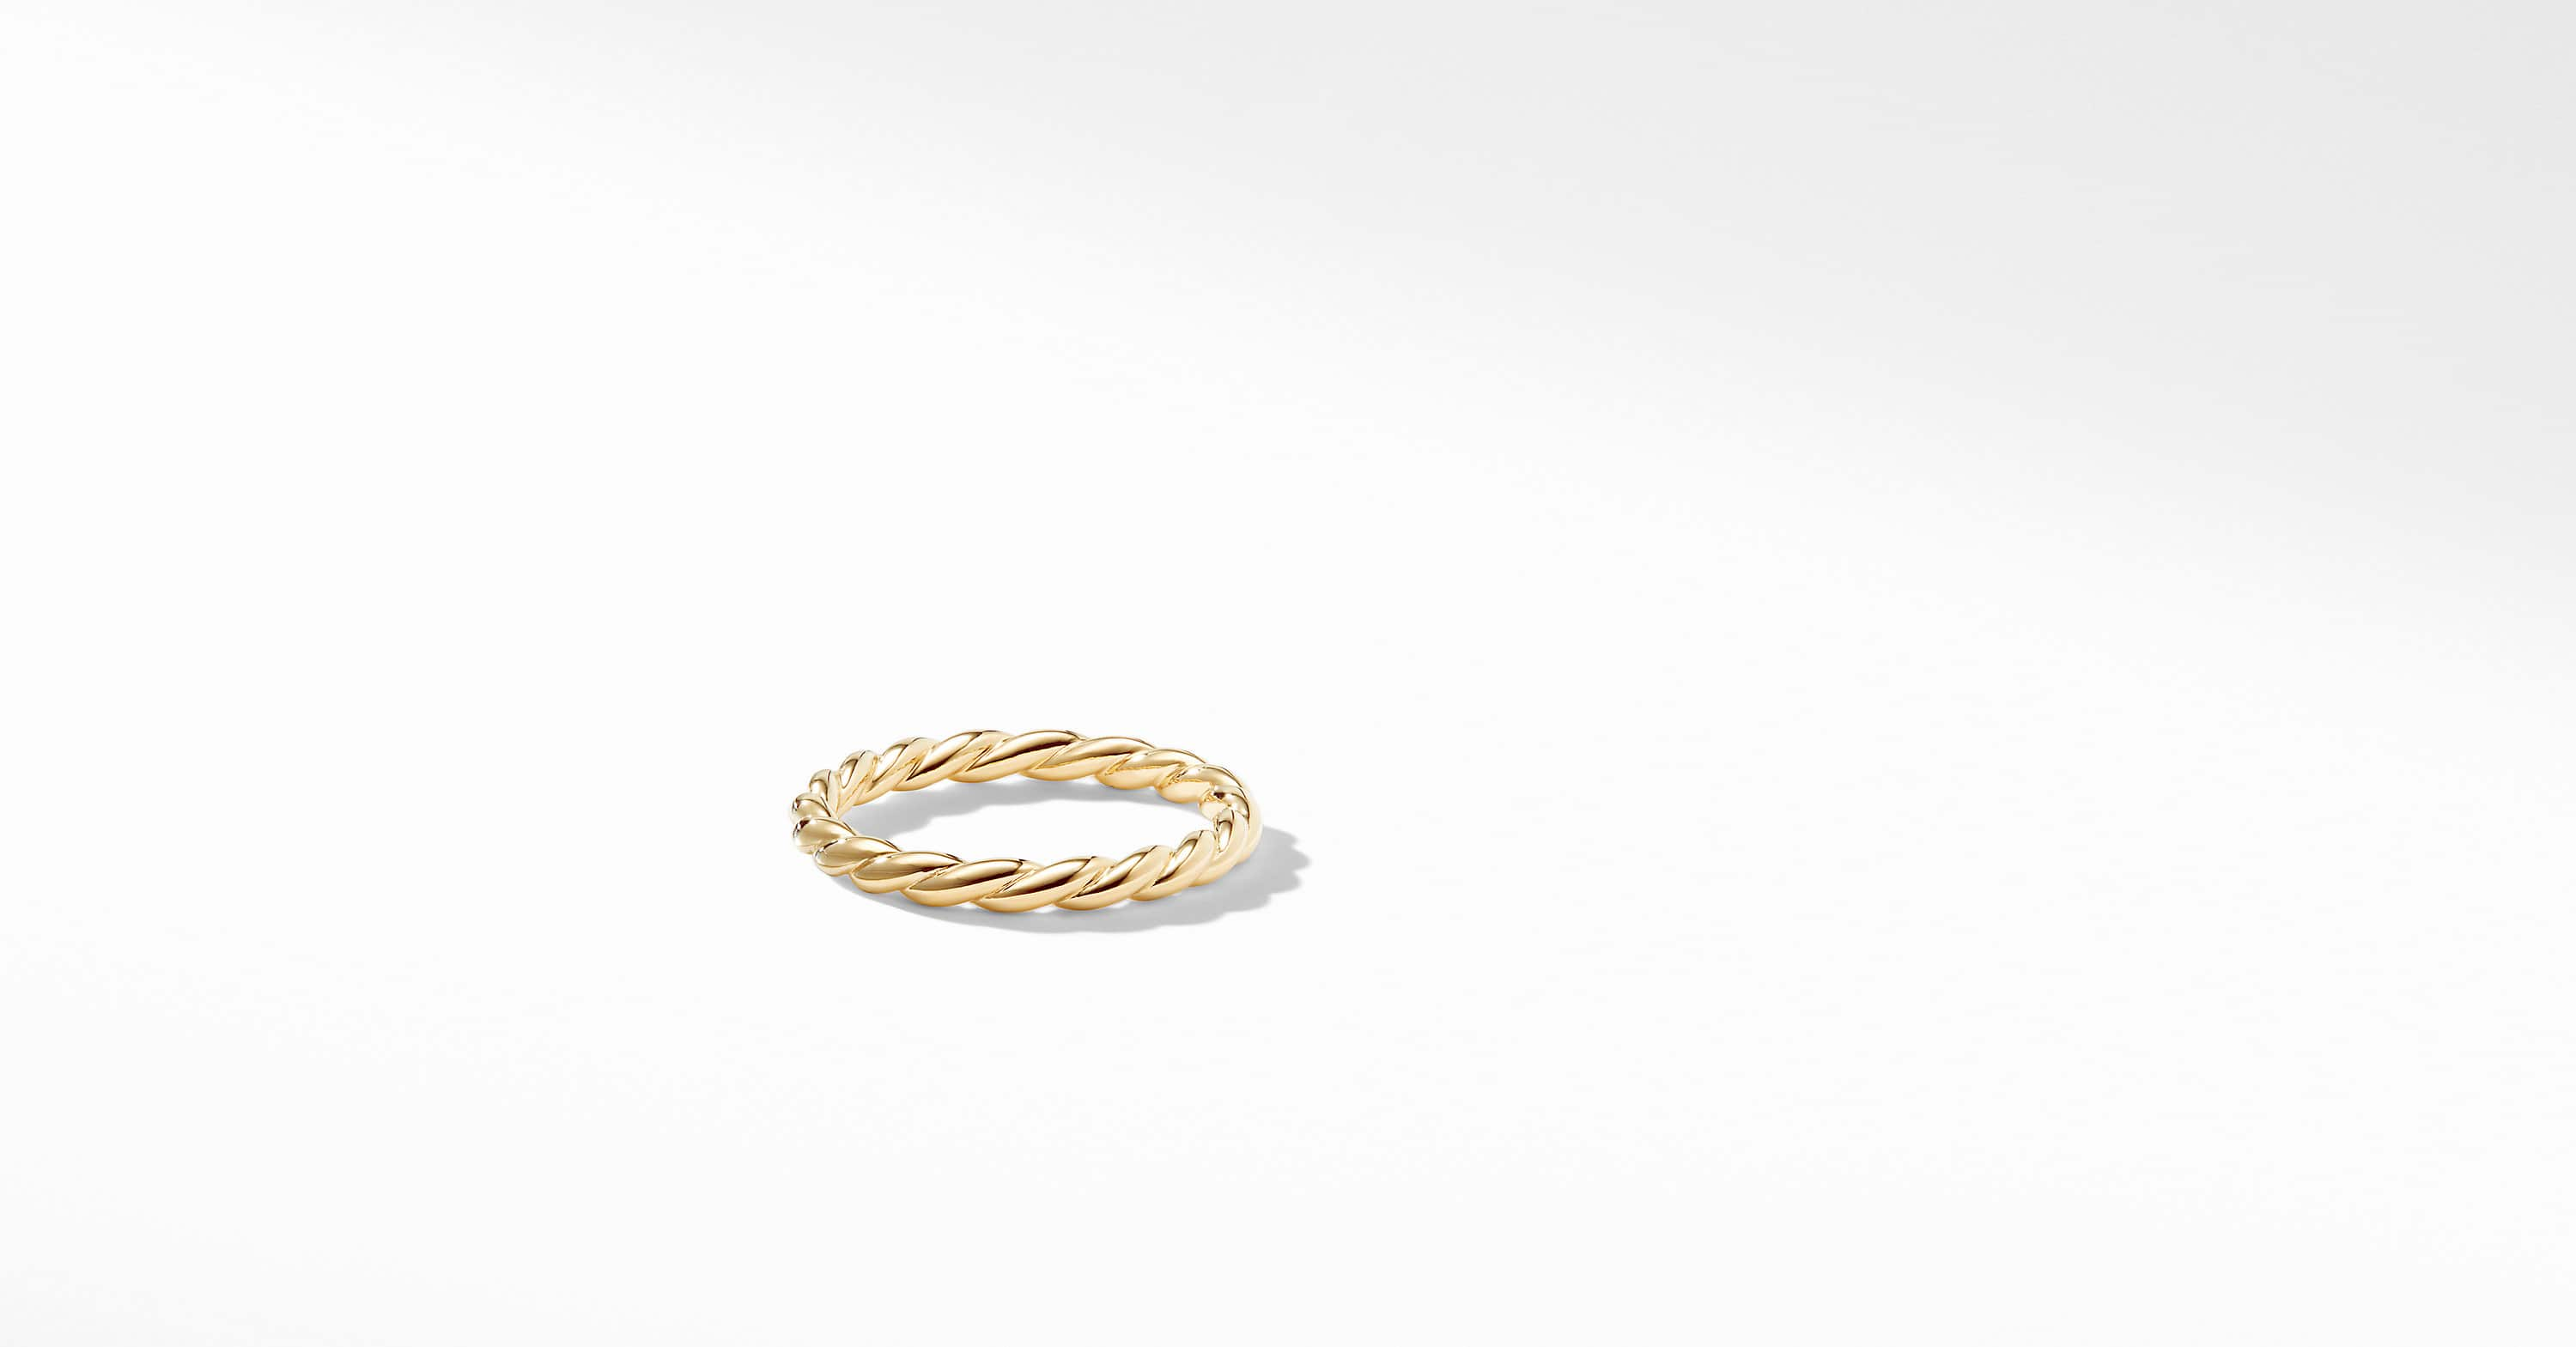 Paveflex Ring in 18K Gold